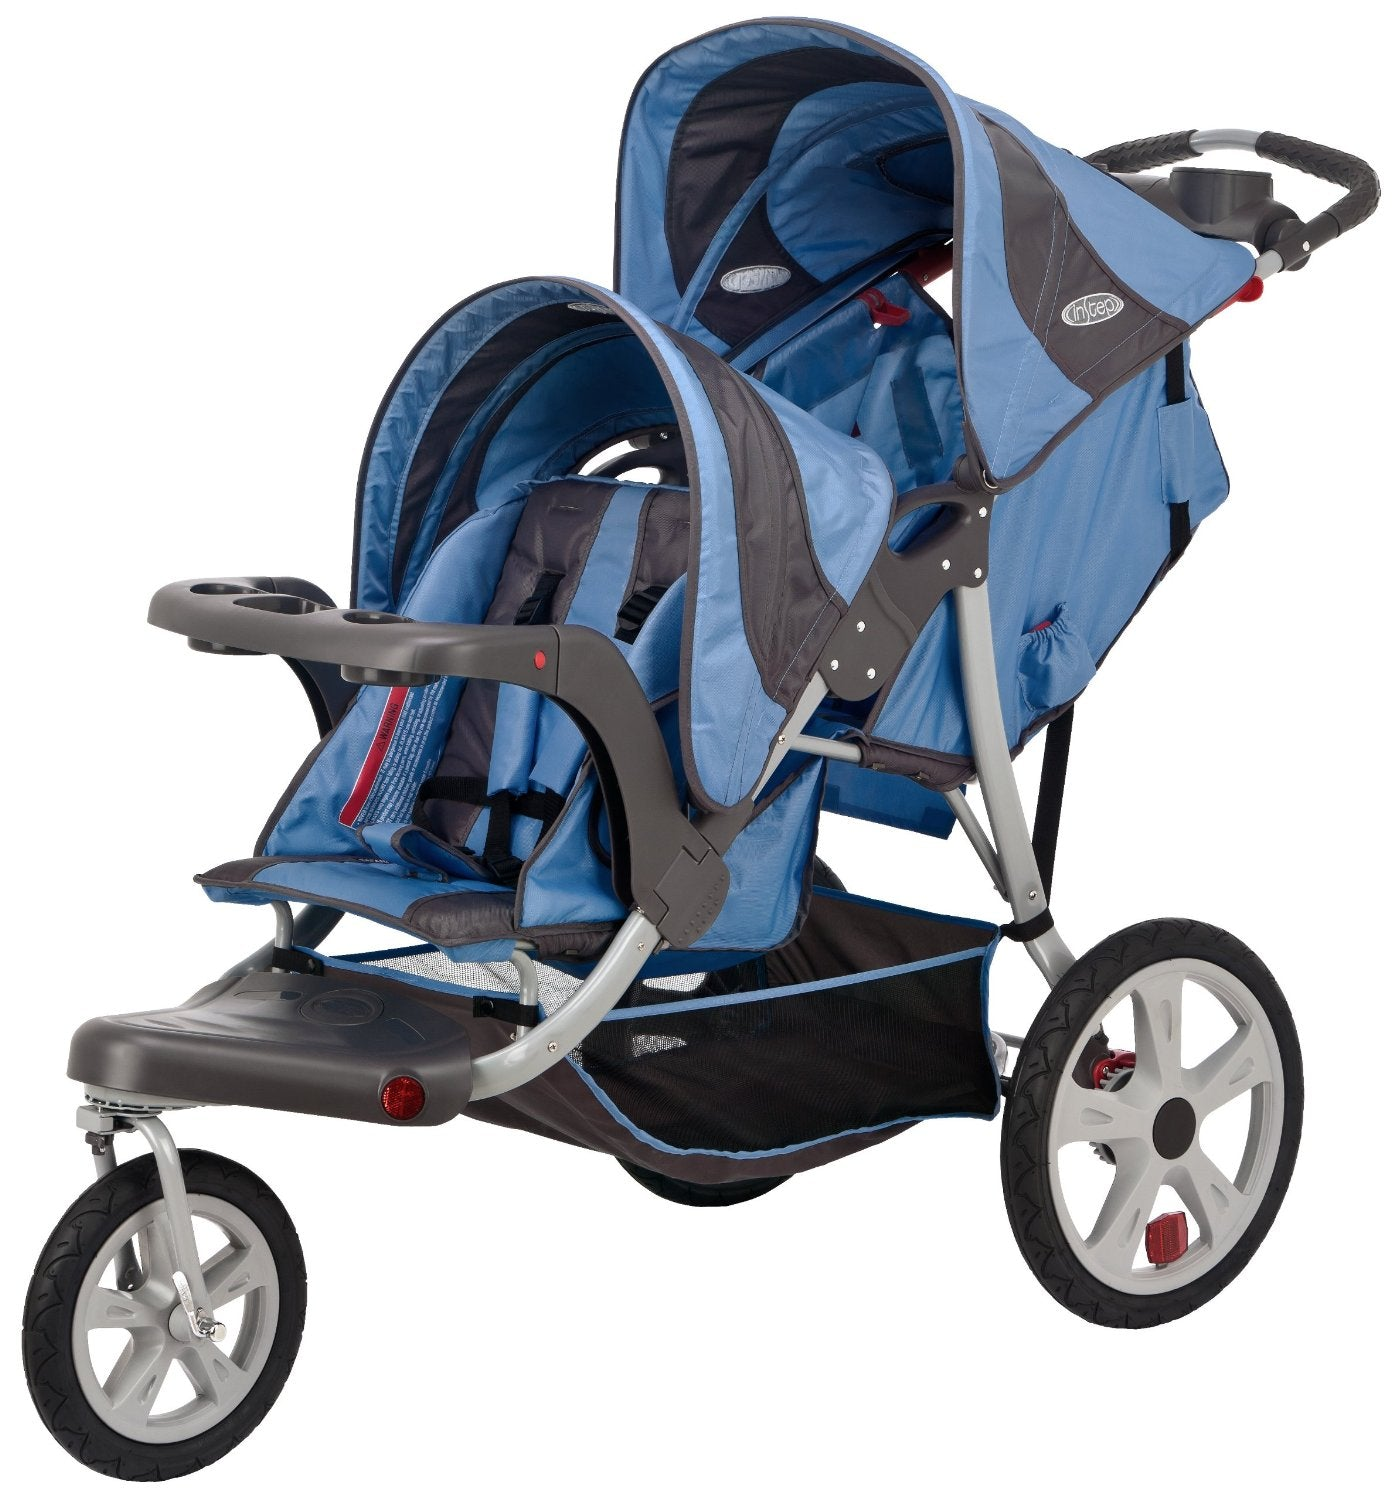 Stroller, Can You Use A Jogging Stroller For Everyday Use